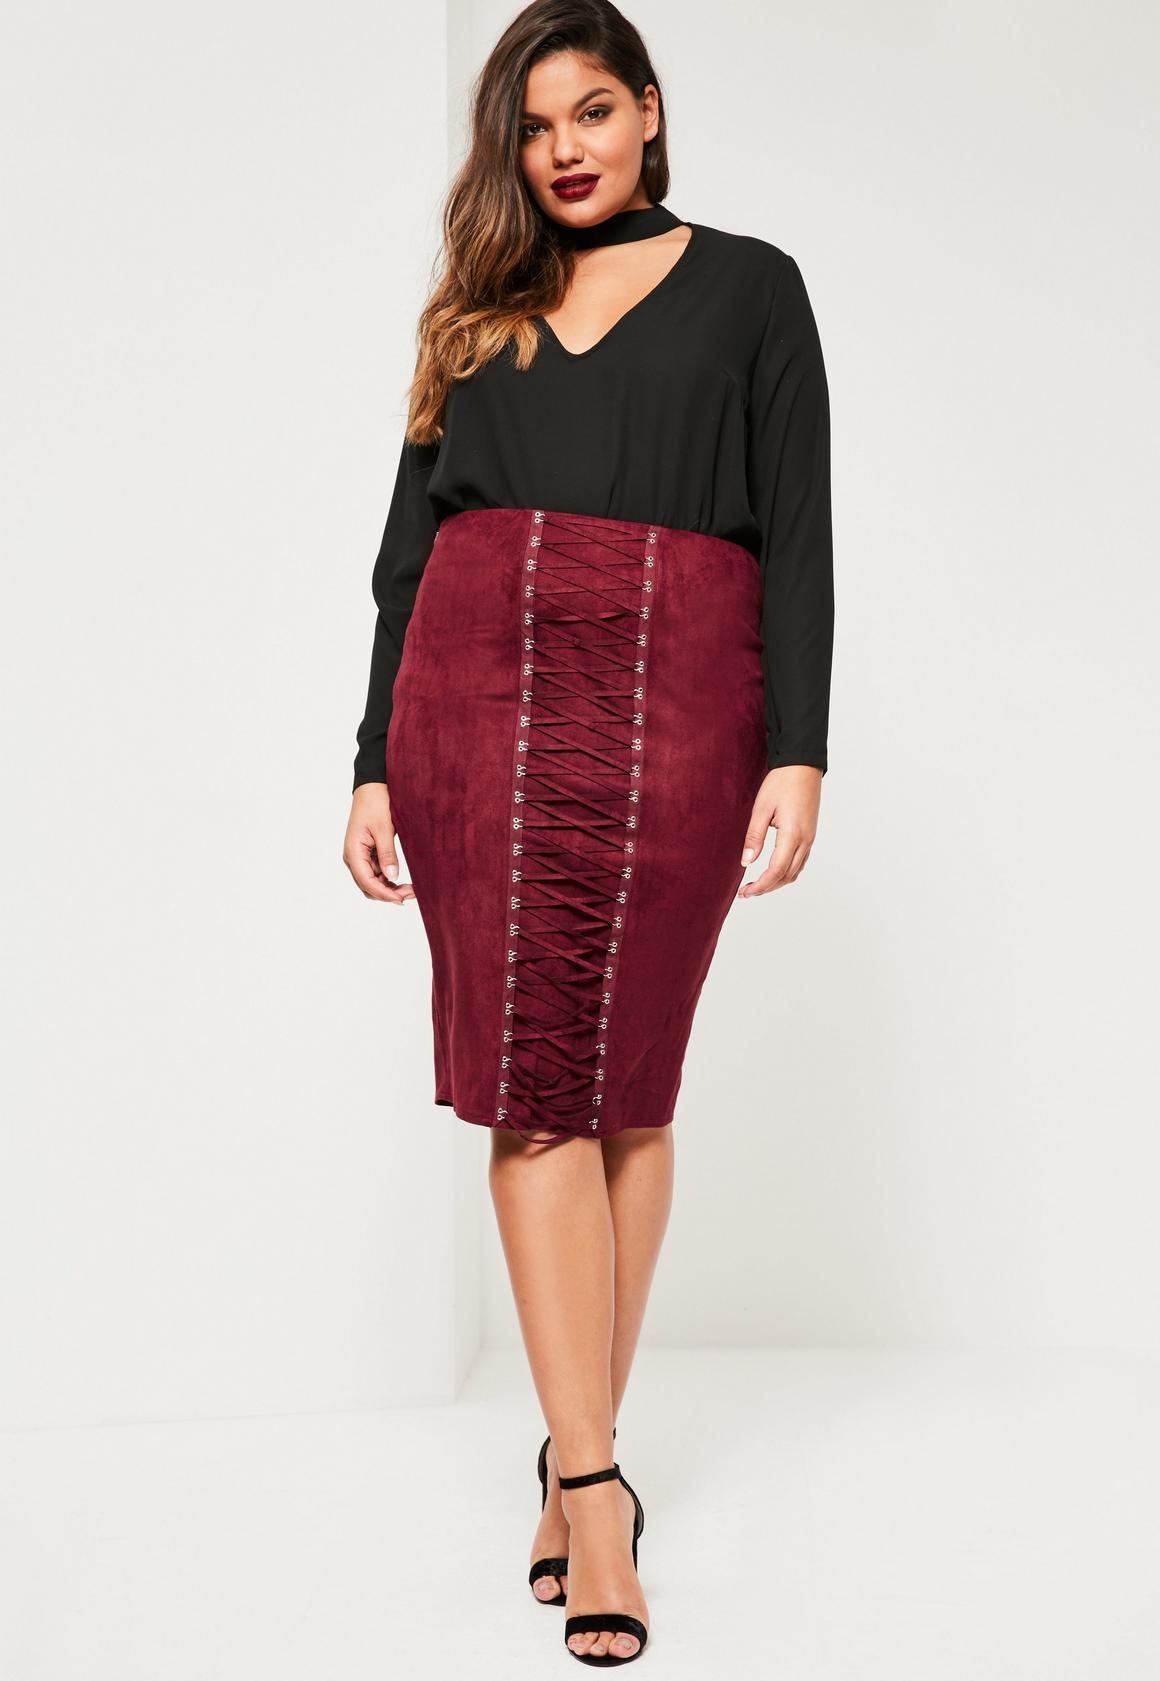 Plus Size Skirts, Midi & Skater | Missguided